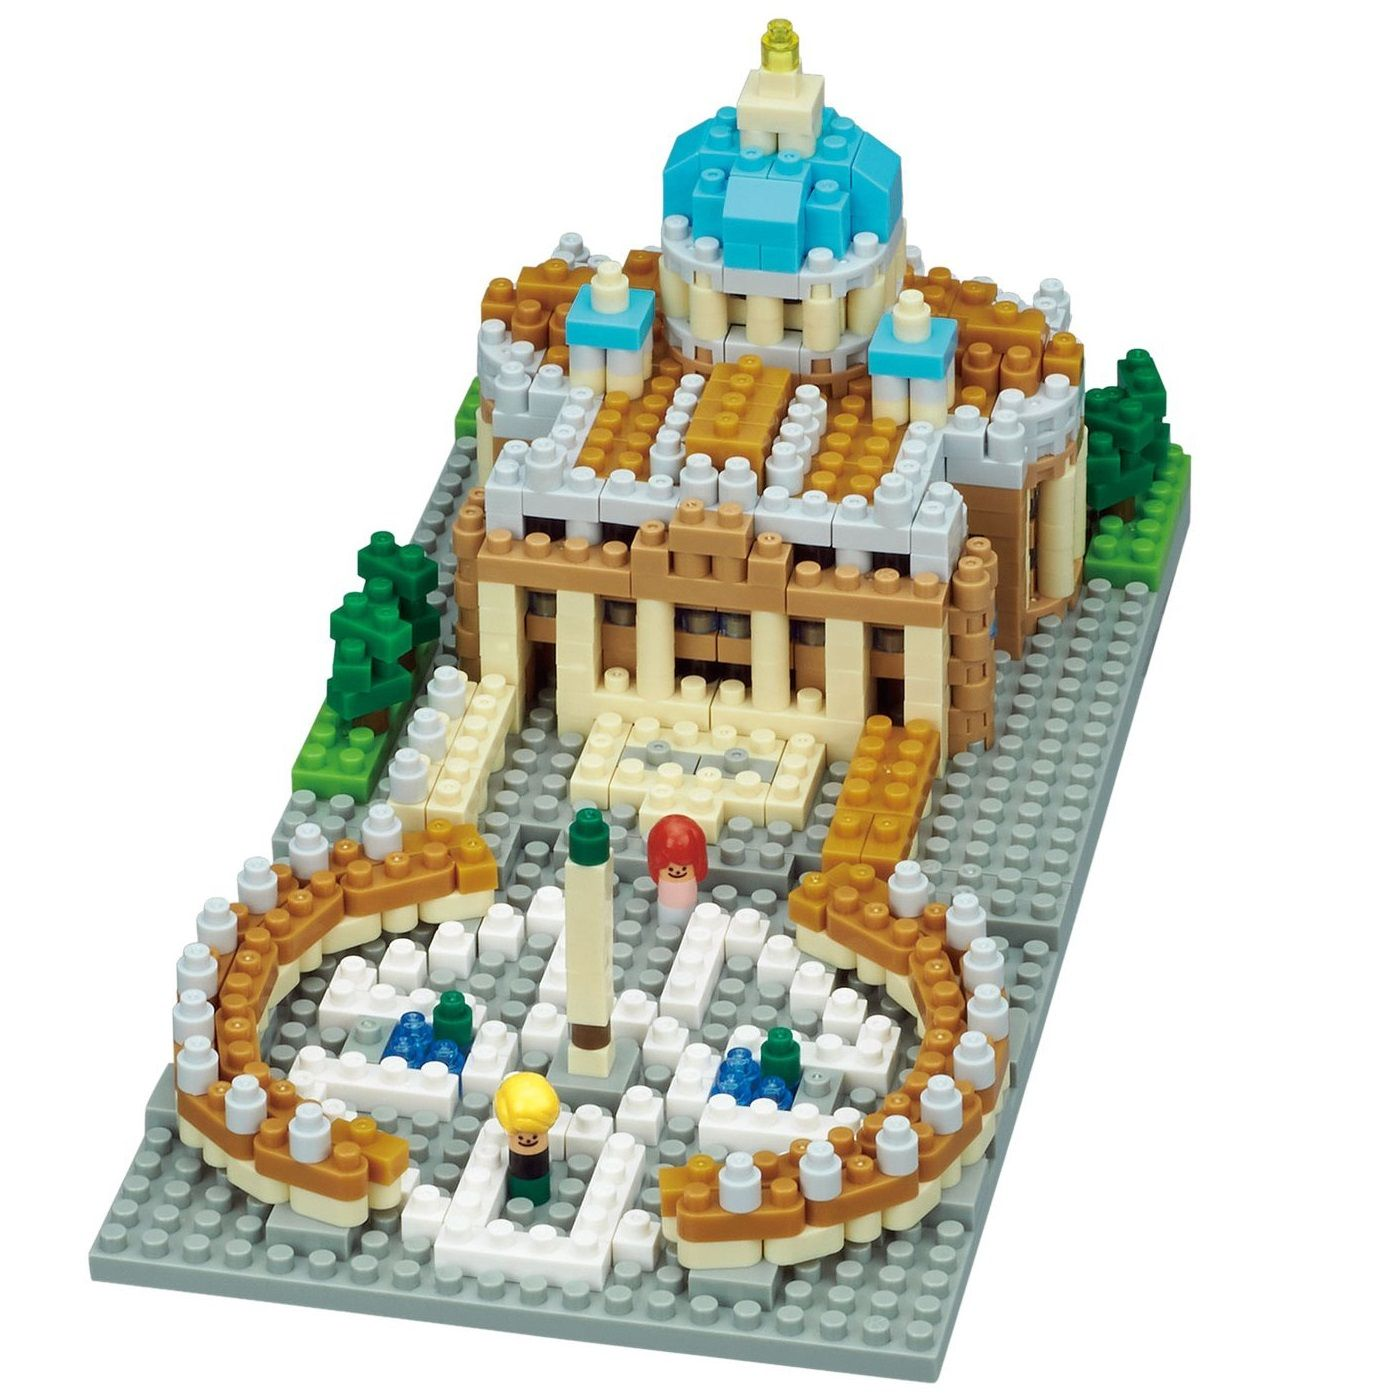 Citta Del Vaticano (Vatican City) Building Sets by Nanoblock (NBH152) by nanoblock